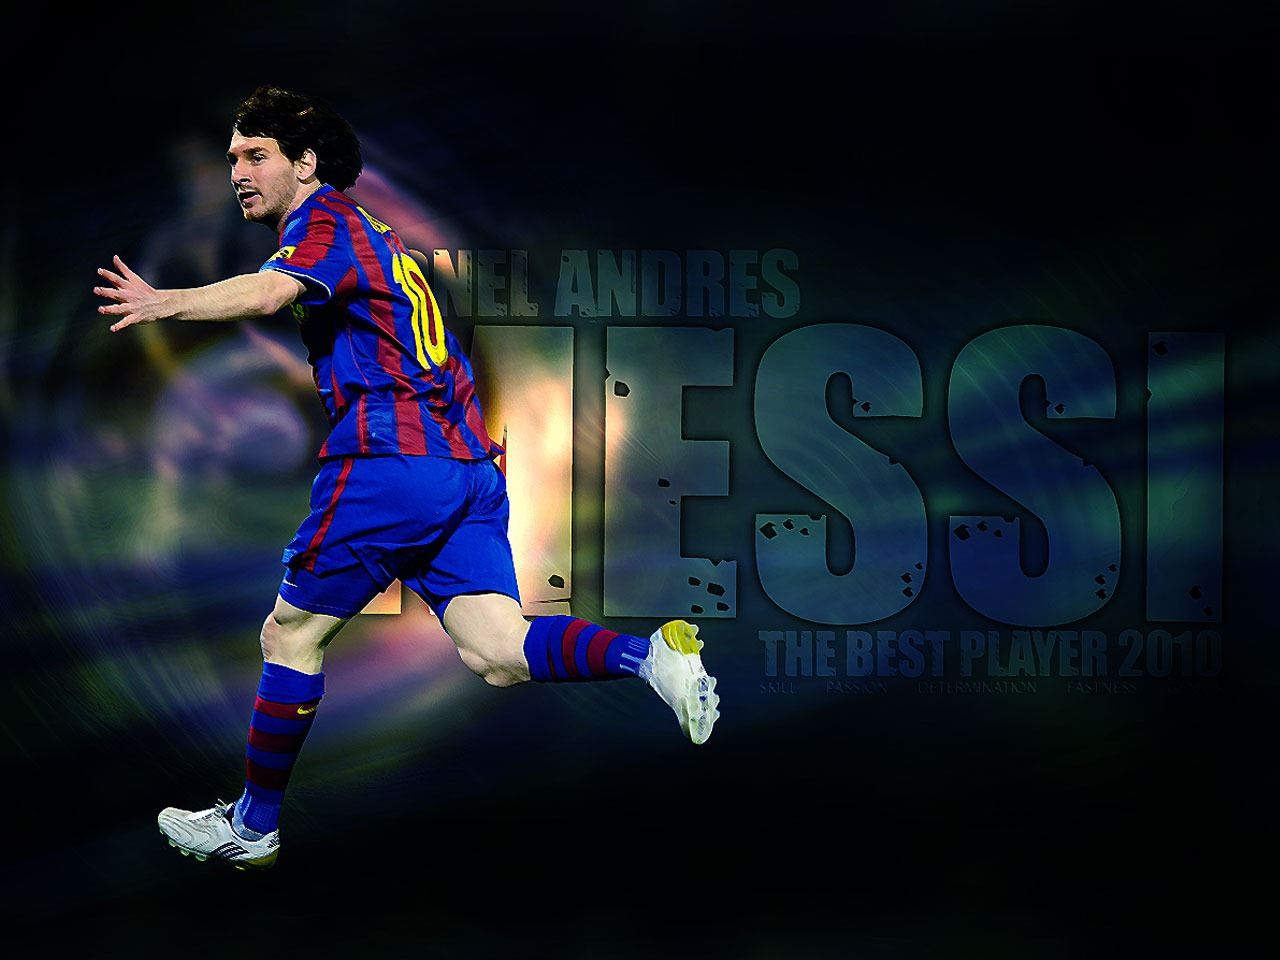 All Wallpapers Lionel Messi hd New Nice Wallpapers 2013 1280x960